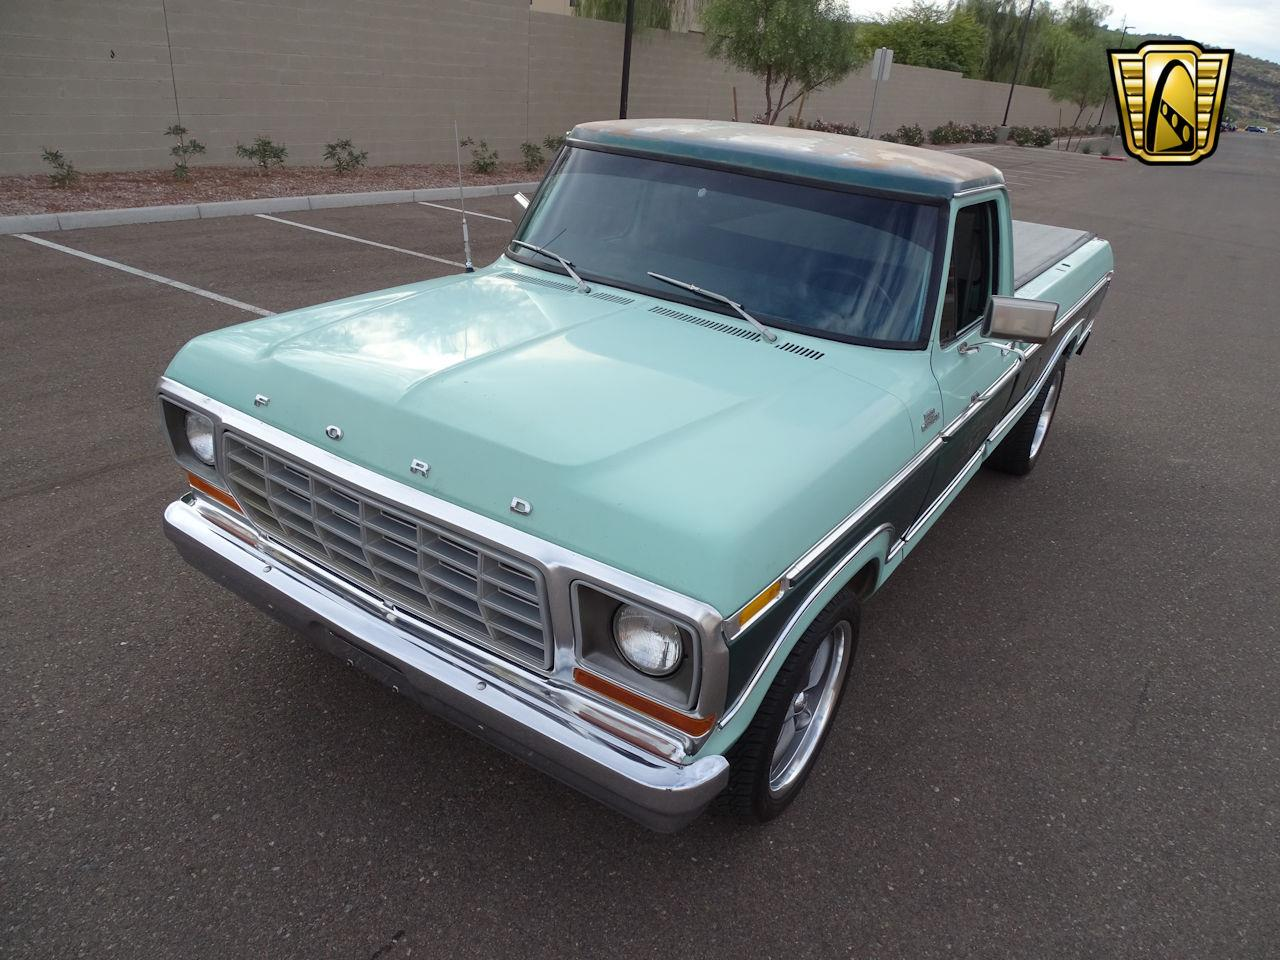 Large Picture of 1978 Ford F150 located in Arizona - $17,995.00 Offered by Gateway Classic Cars - Scottsdale - MEMV